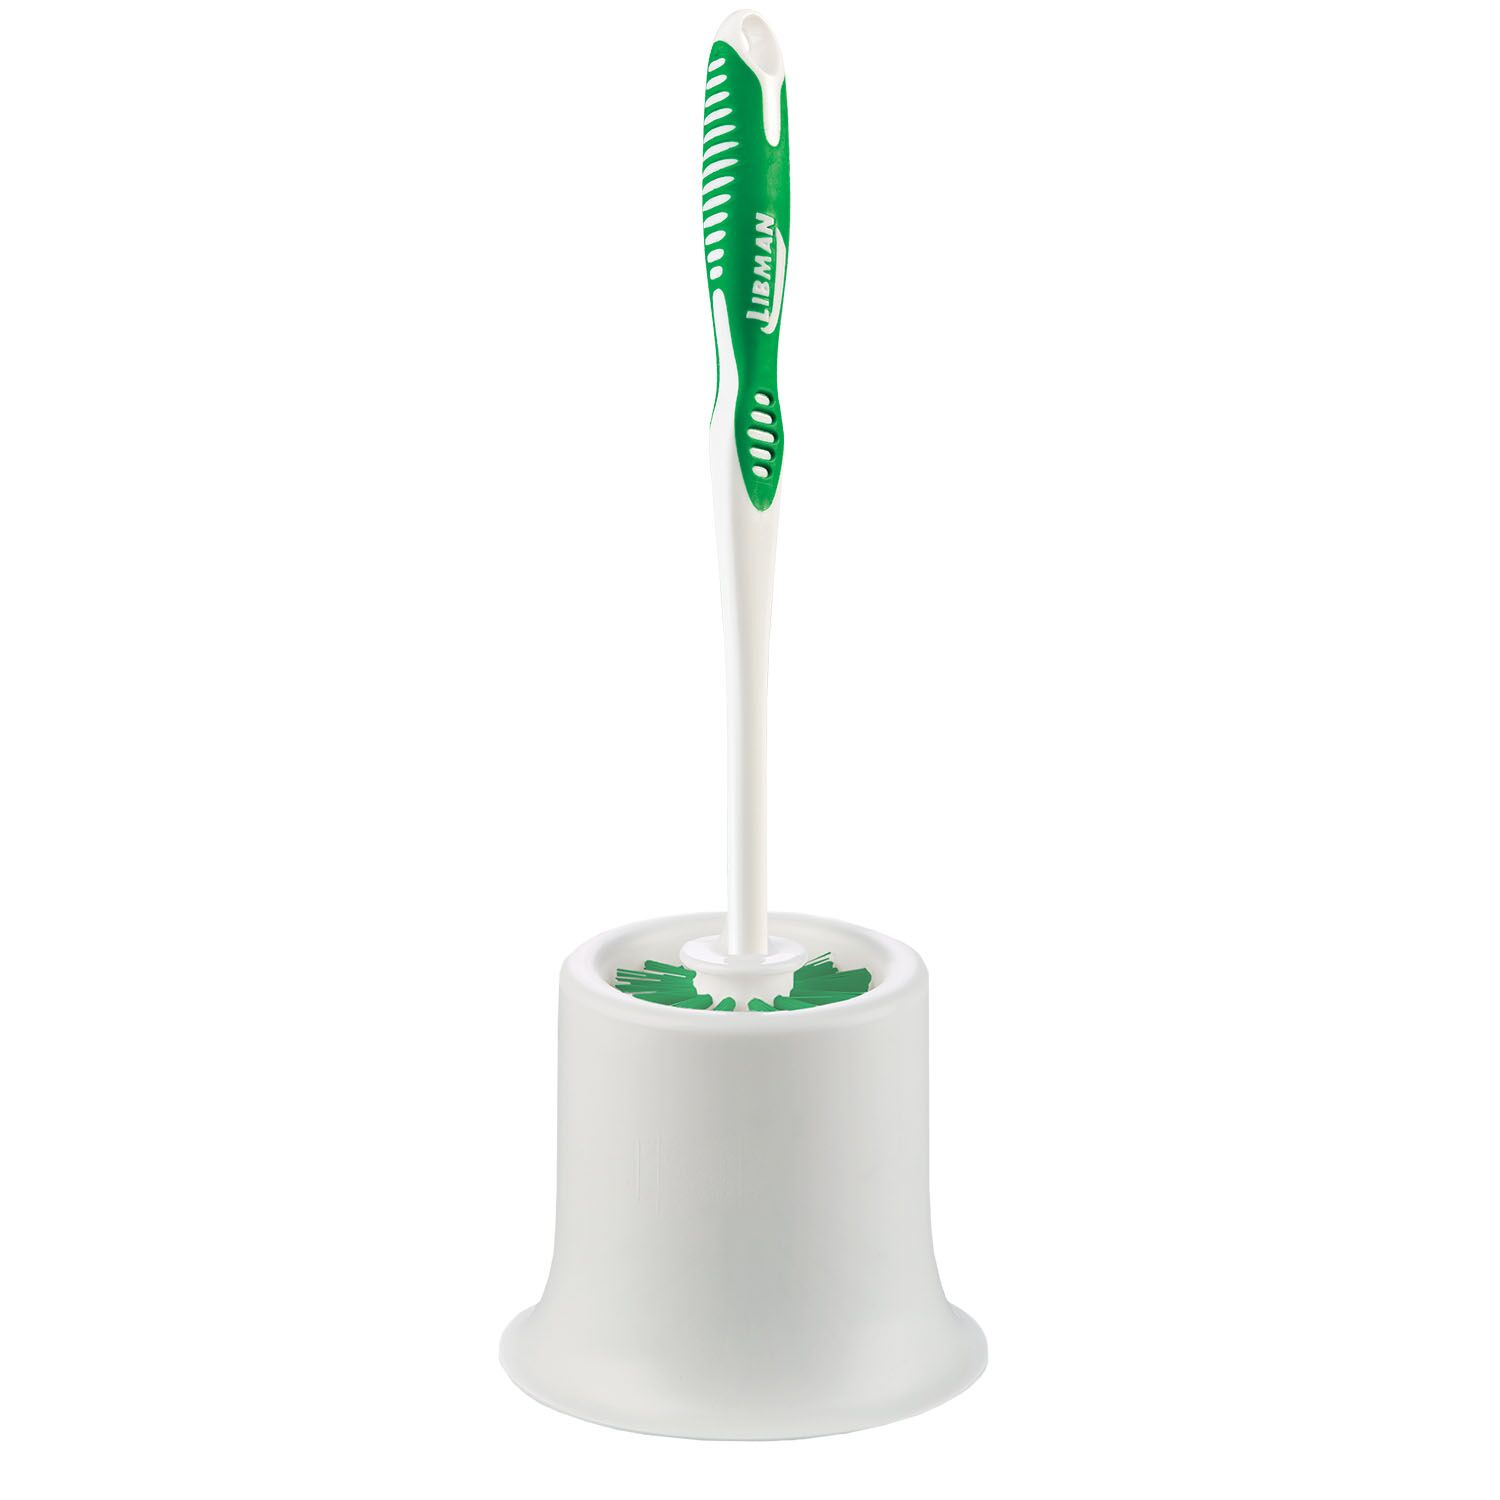 Bowl Brush and Caddy